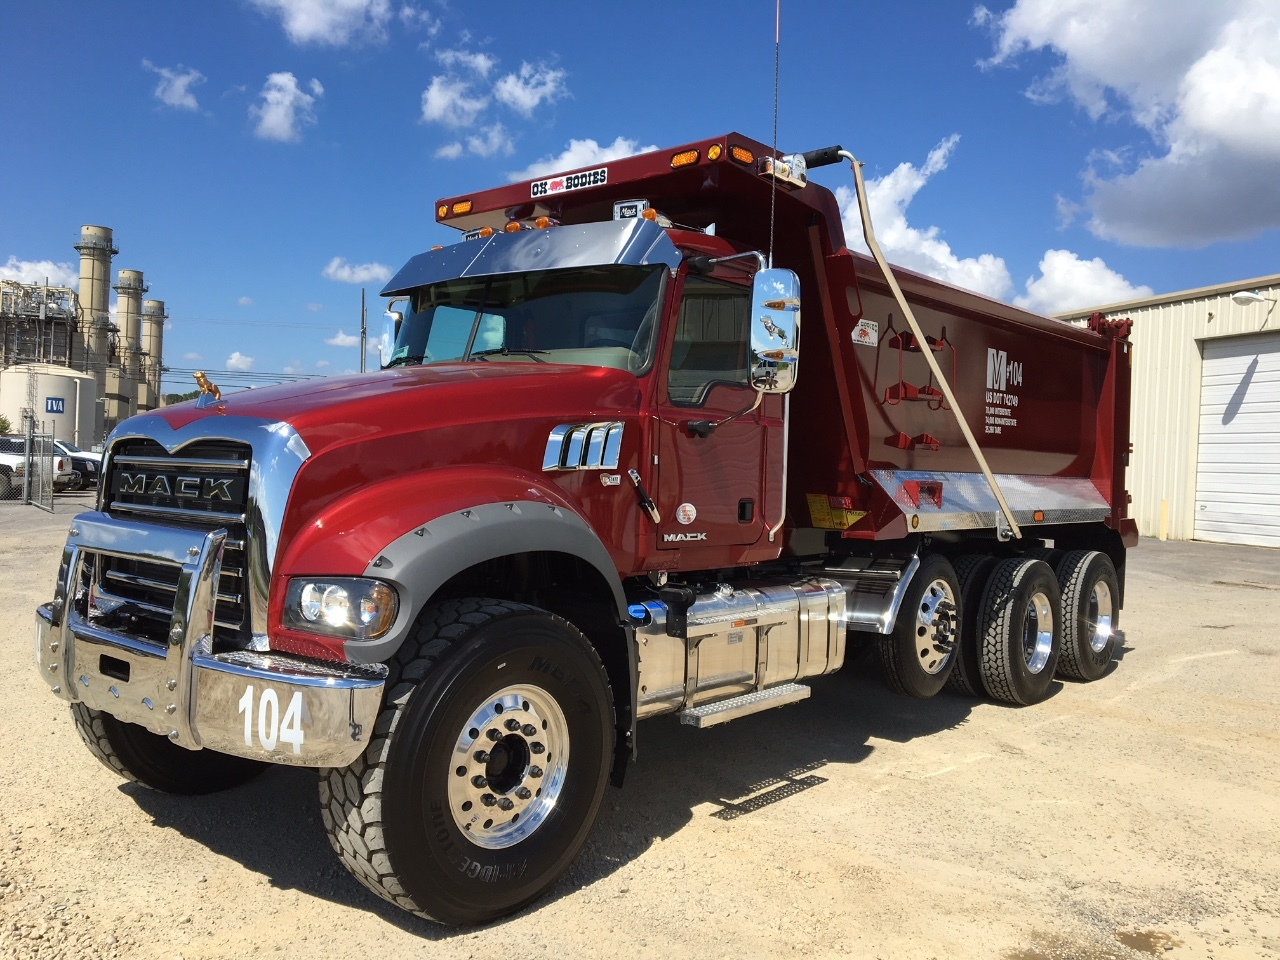 MACK Trucks For Sale - 2,473 Listings - Page 1 of 99